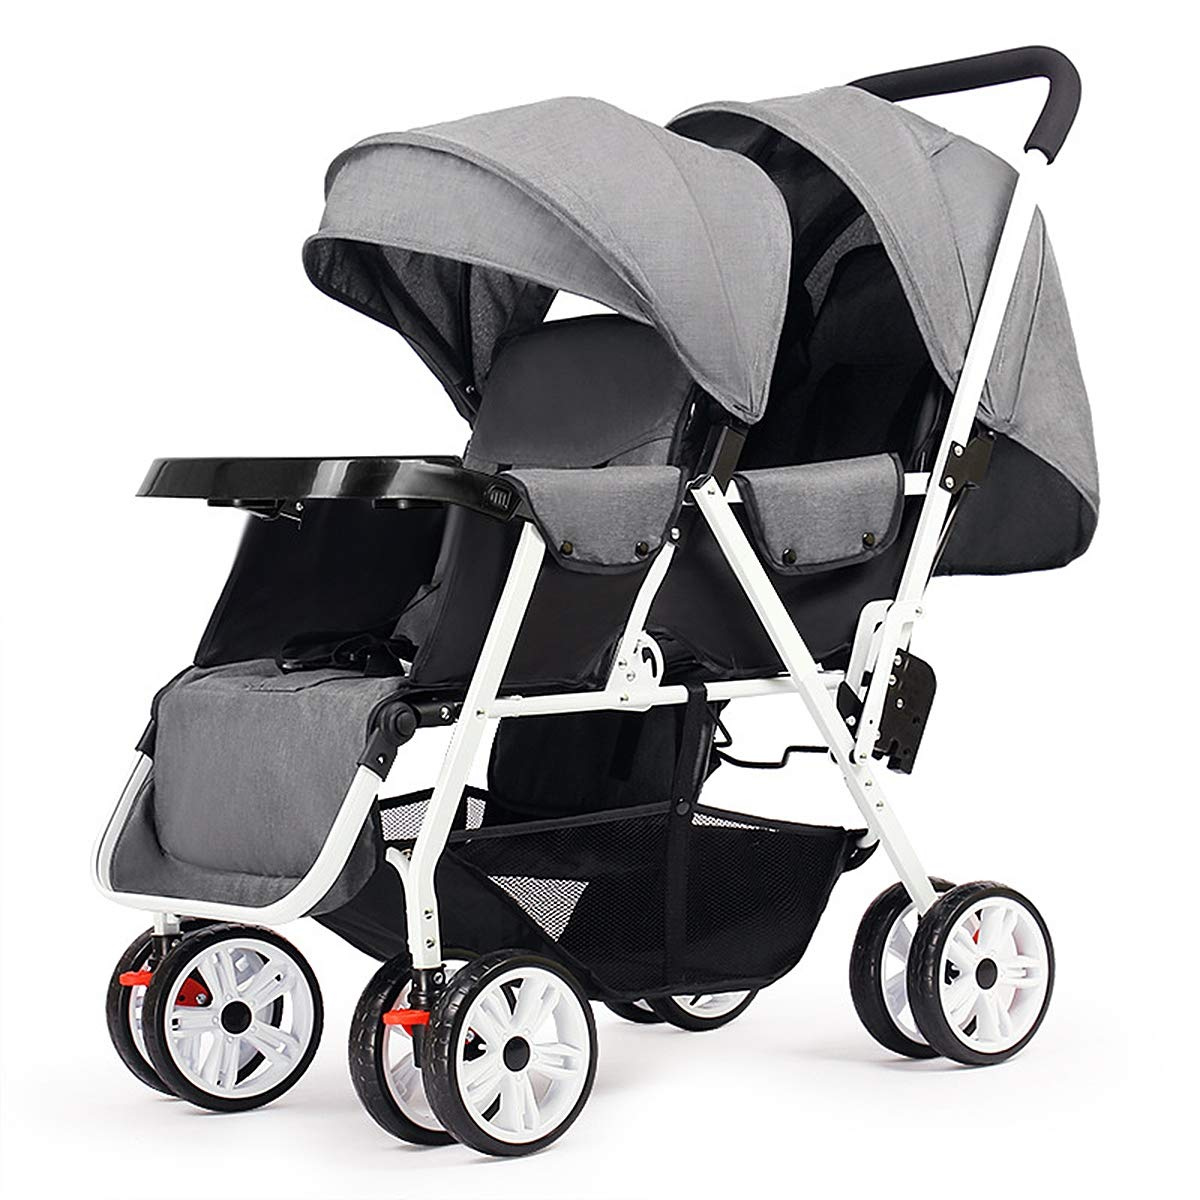 Eustoma Foldable Twin Stroller, One-Hand Folding Double Baby Stroller with Multi-Functional Awning, Five-Point Seat Belt and Dinner Plate,Gray